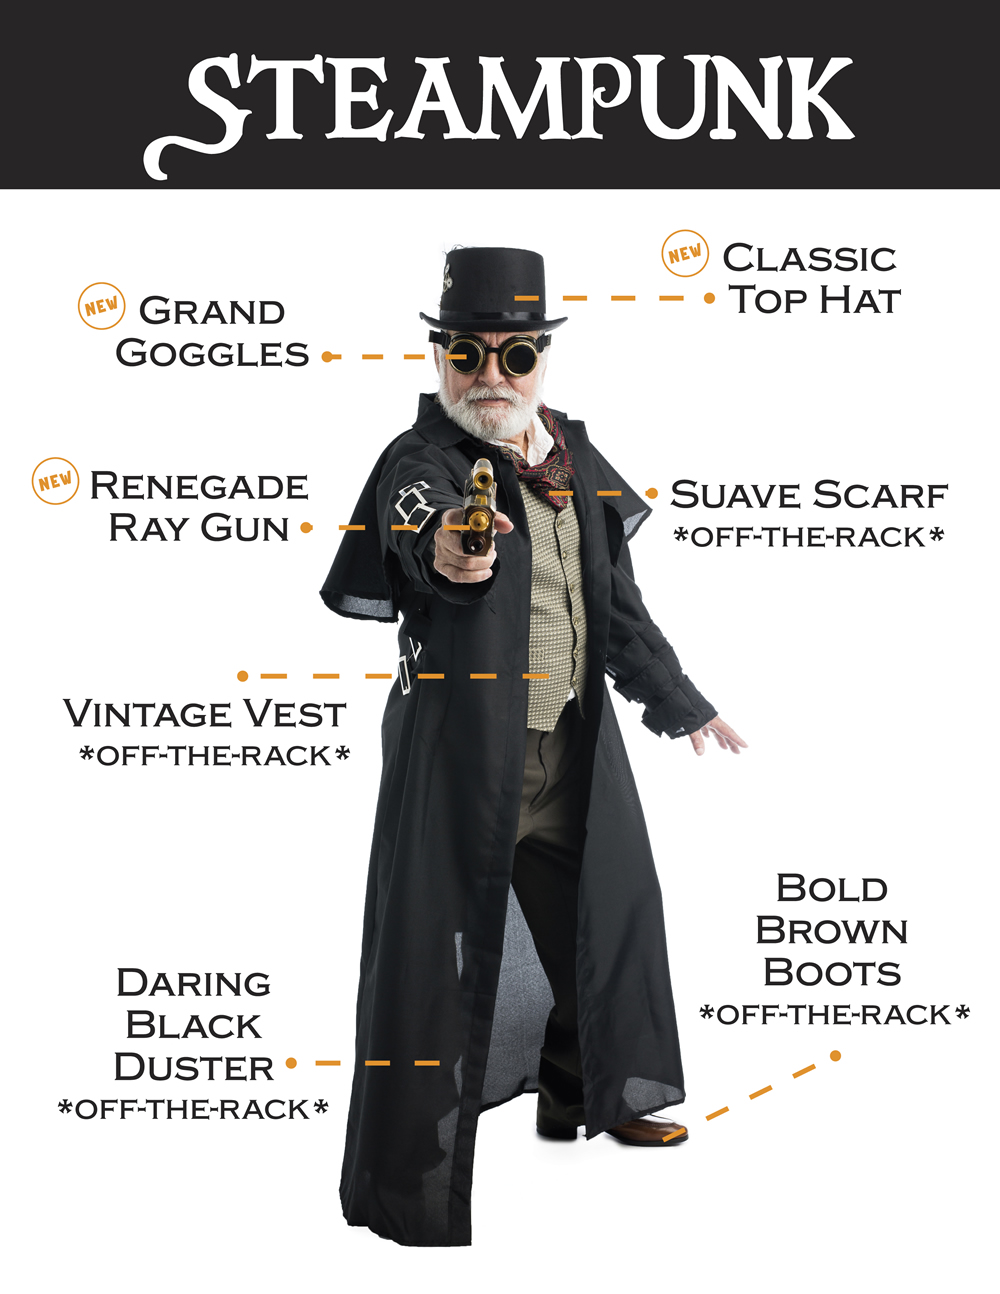 Steampunk: grand goggles, classic top hat, suave scarf, vintage vest